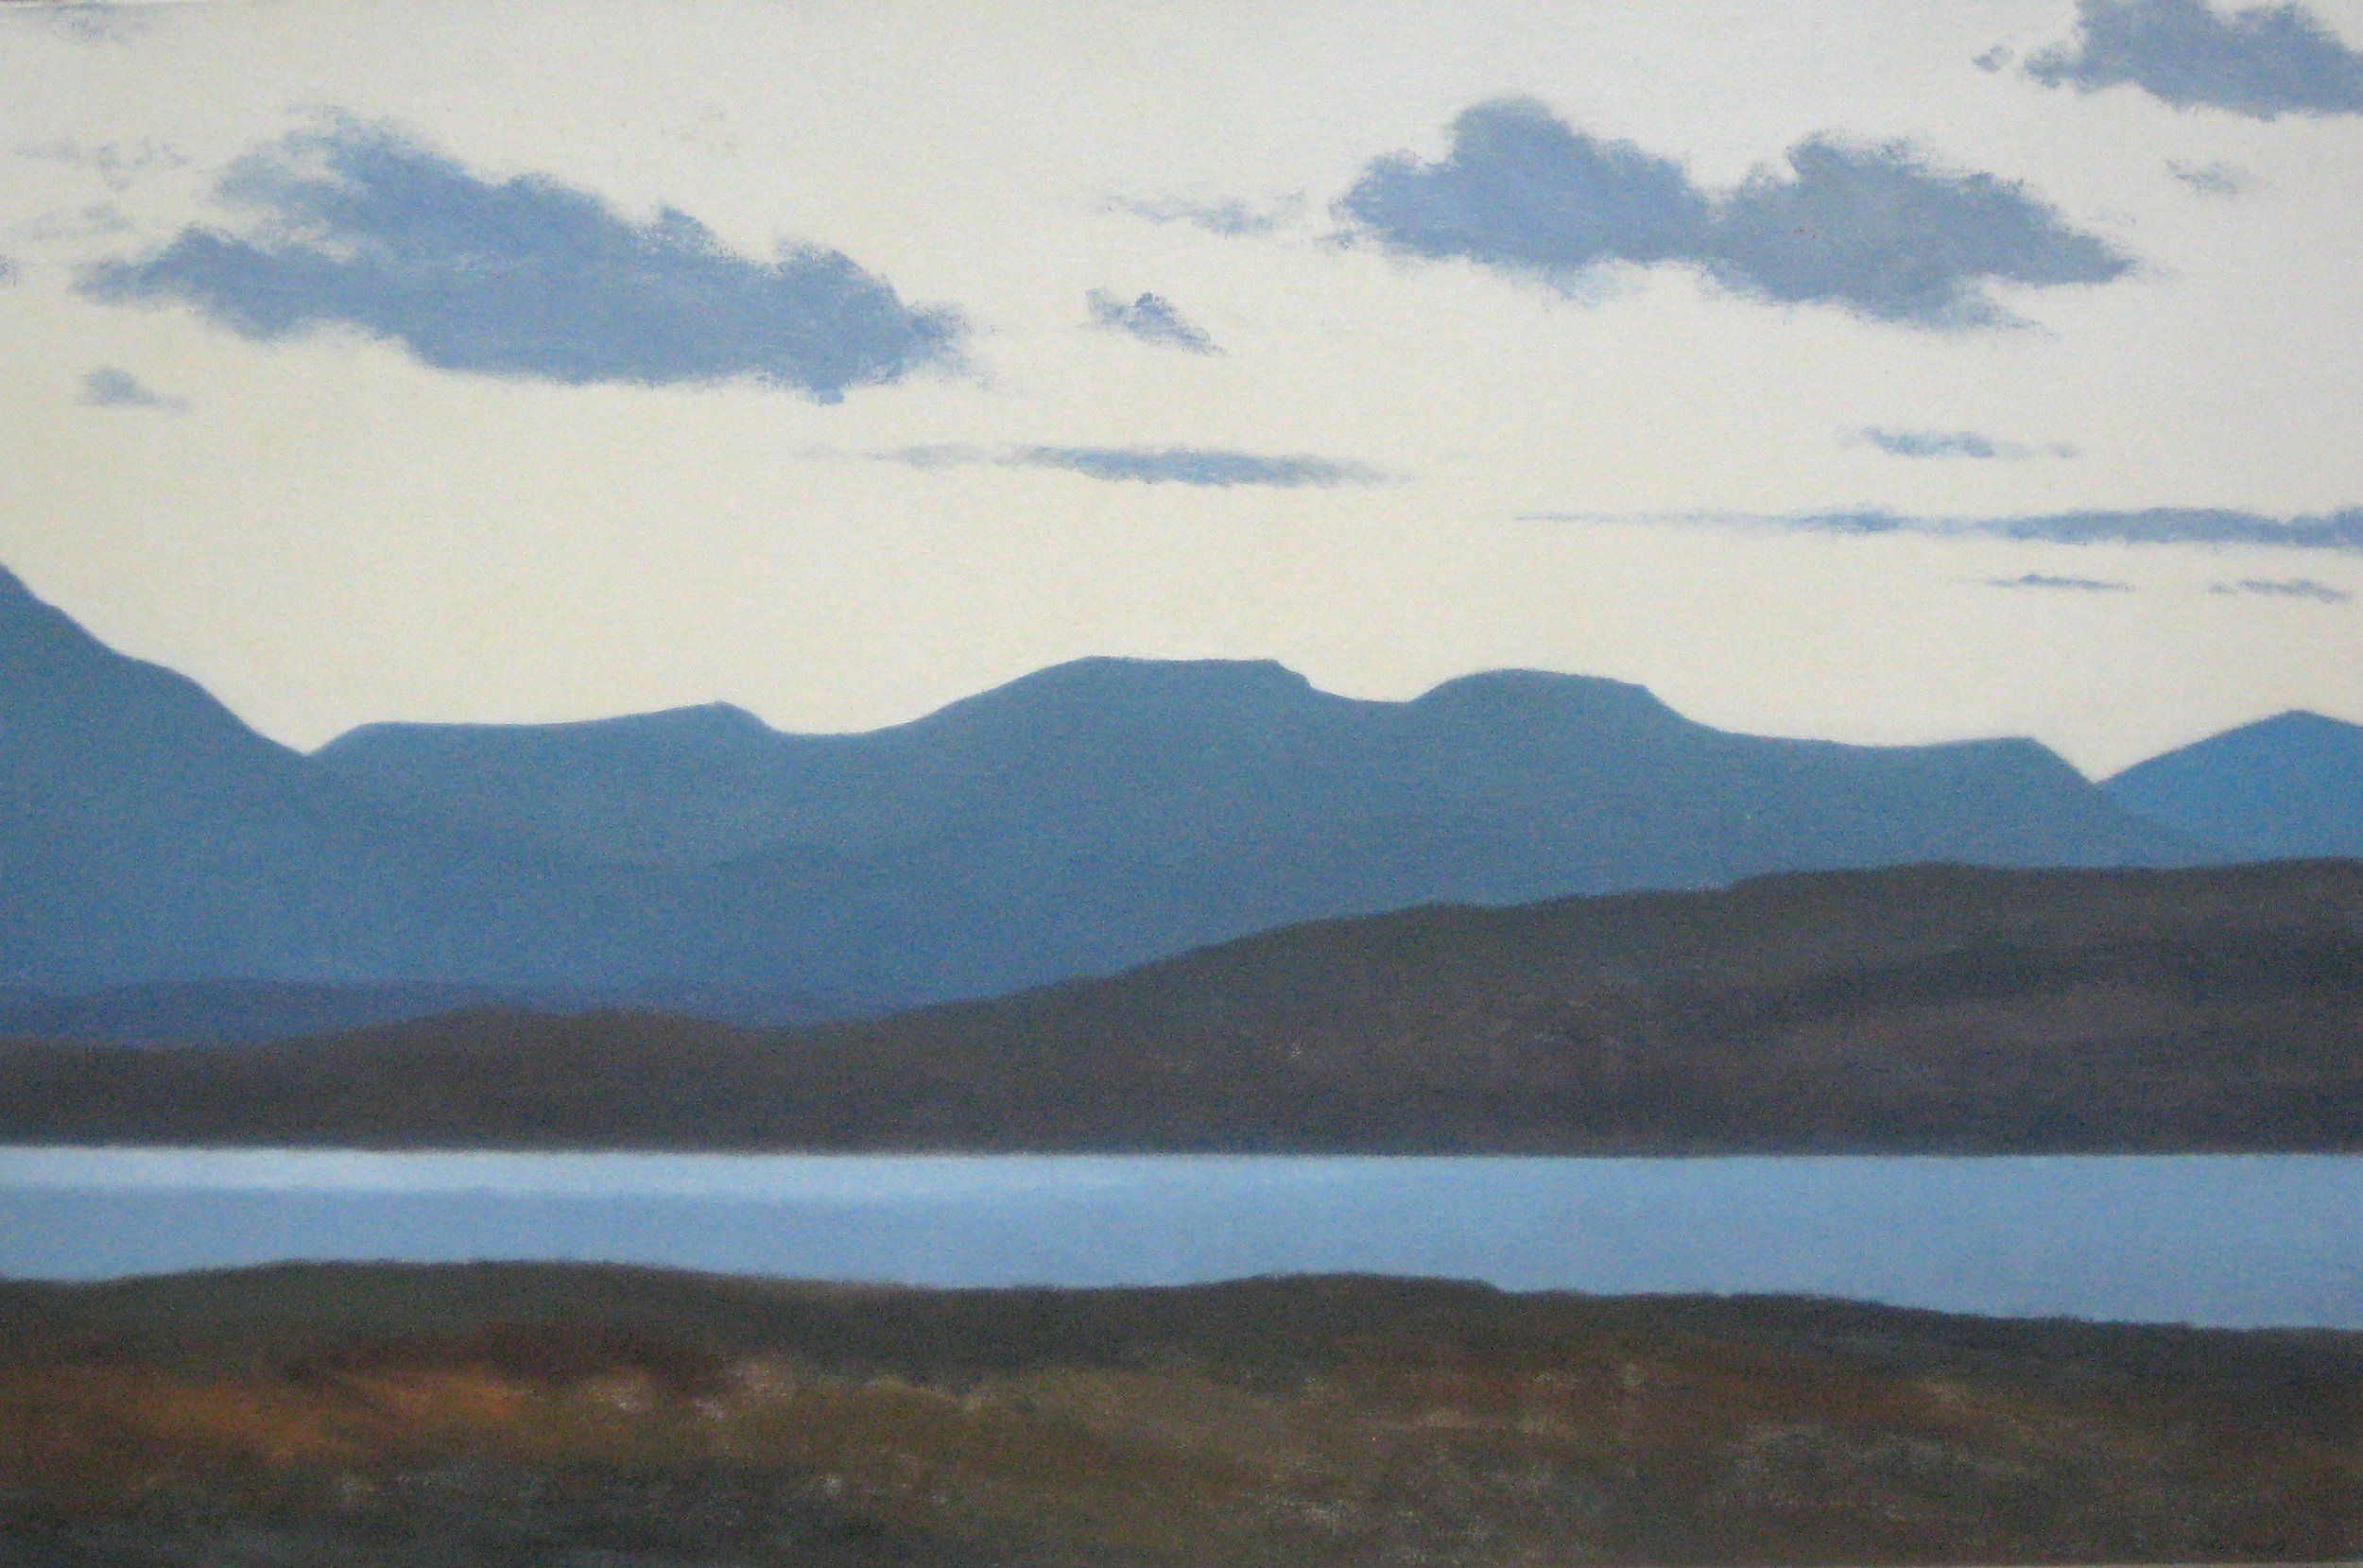 NEAR TRAWSFYNYDD, EVENING, NORTH WIND